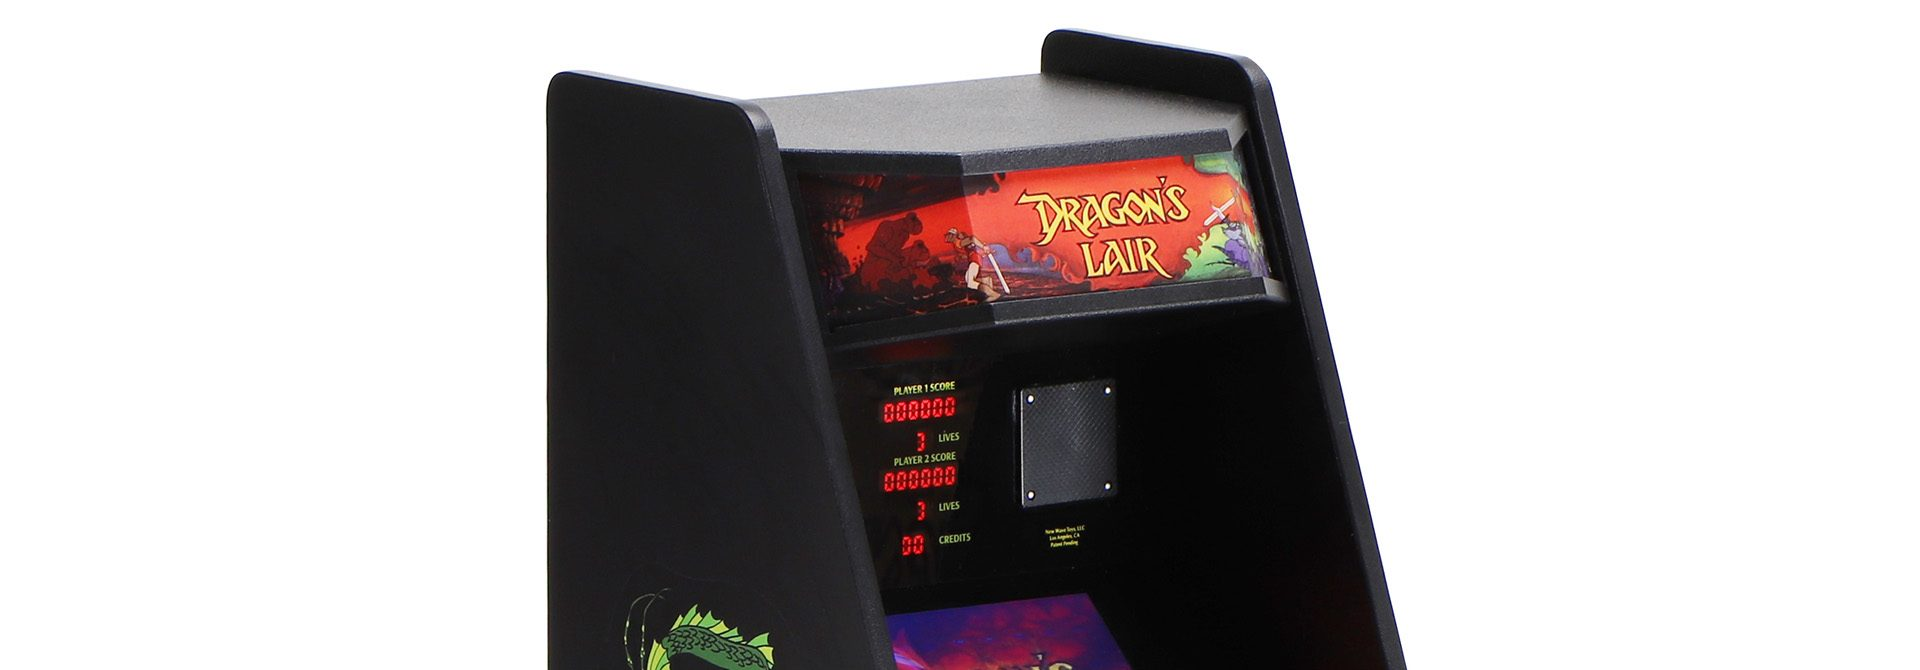 Dragon's Lair 1/6 Scale Replicade Now Available